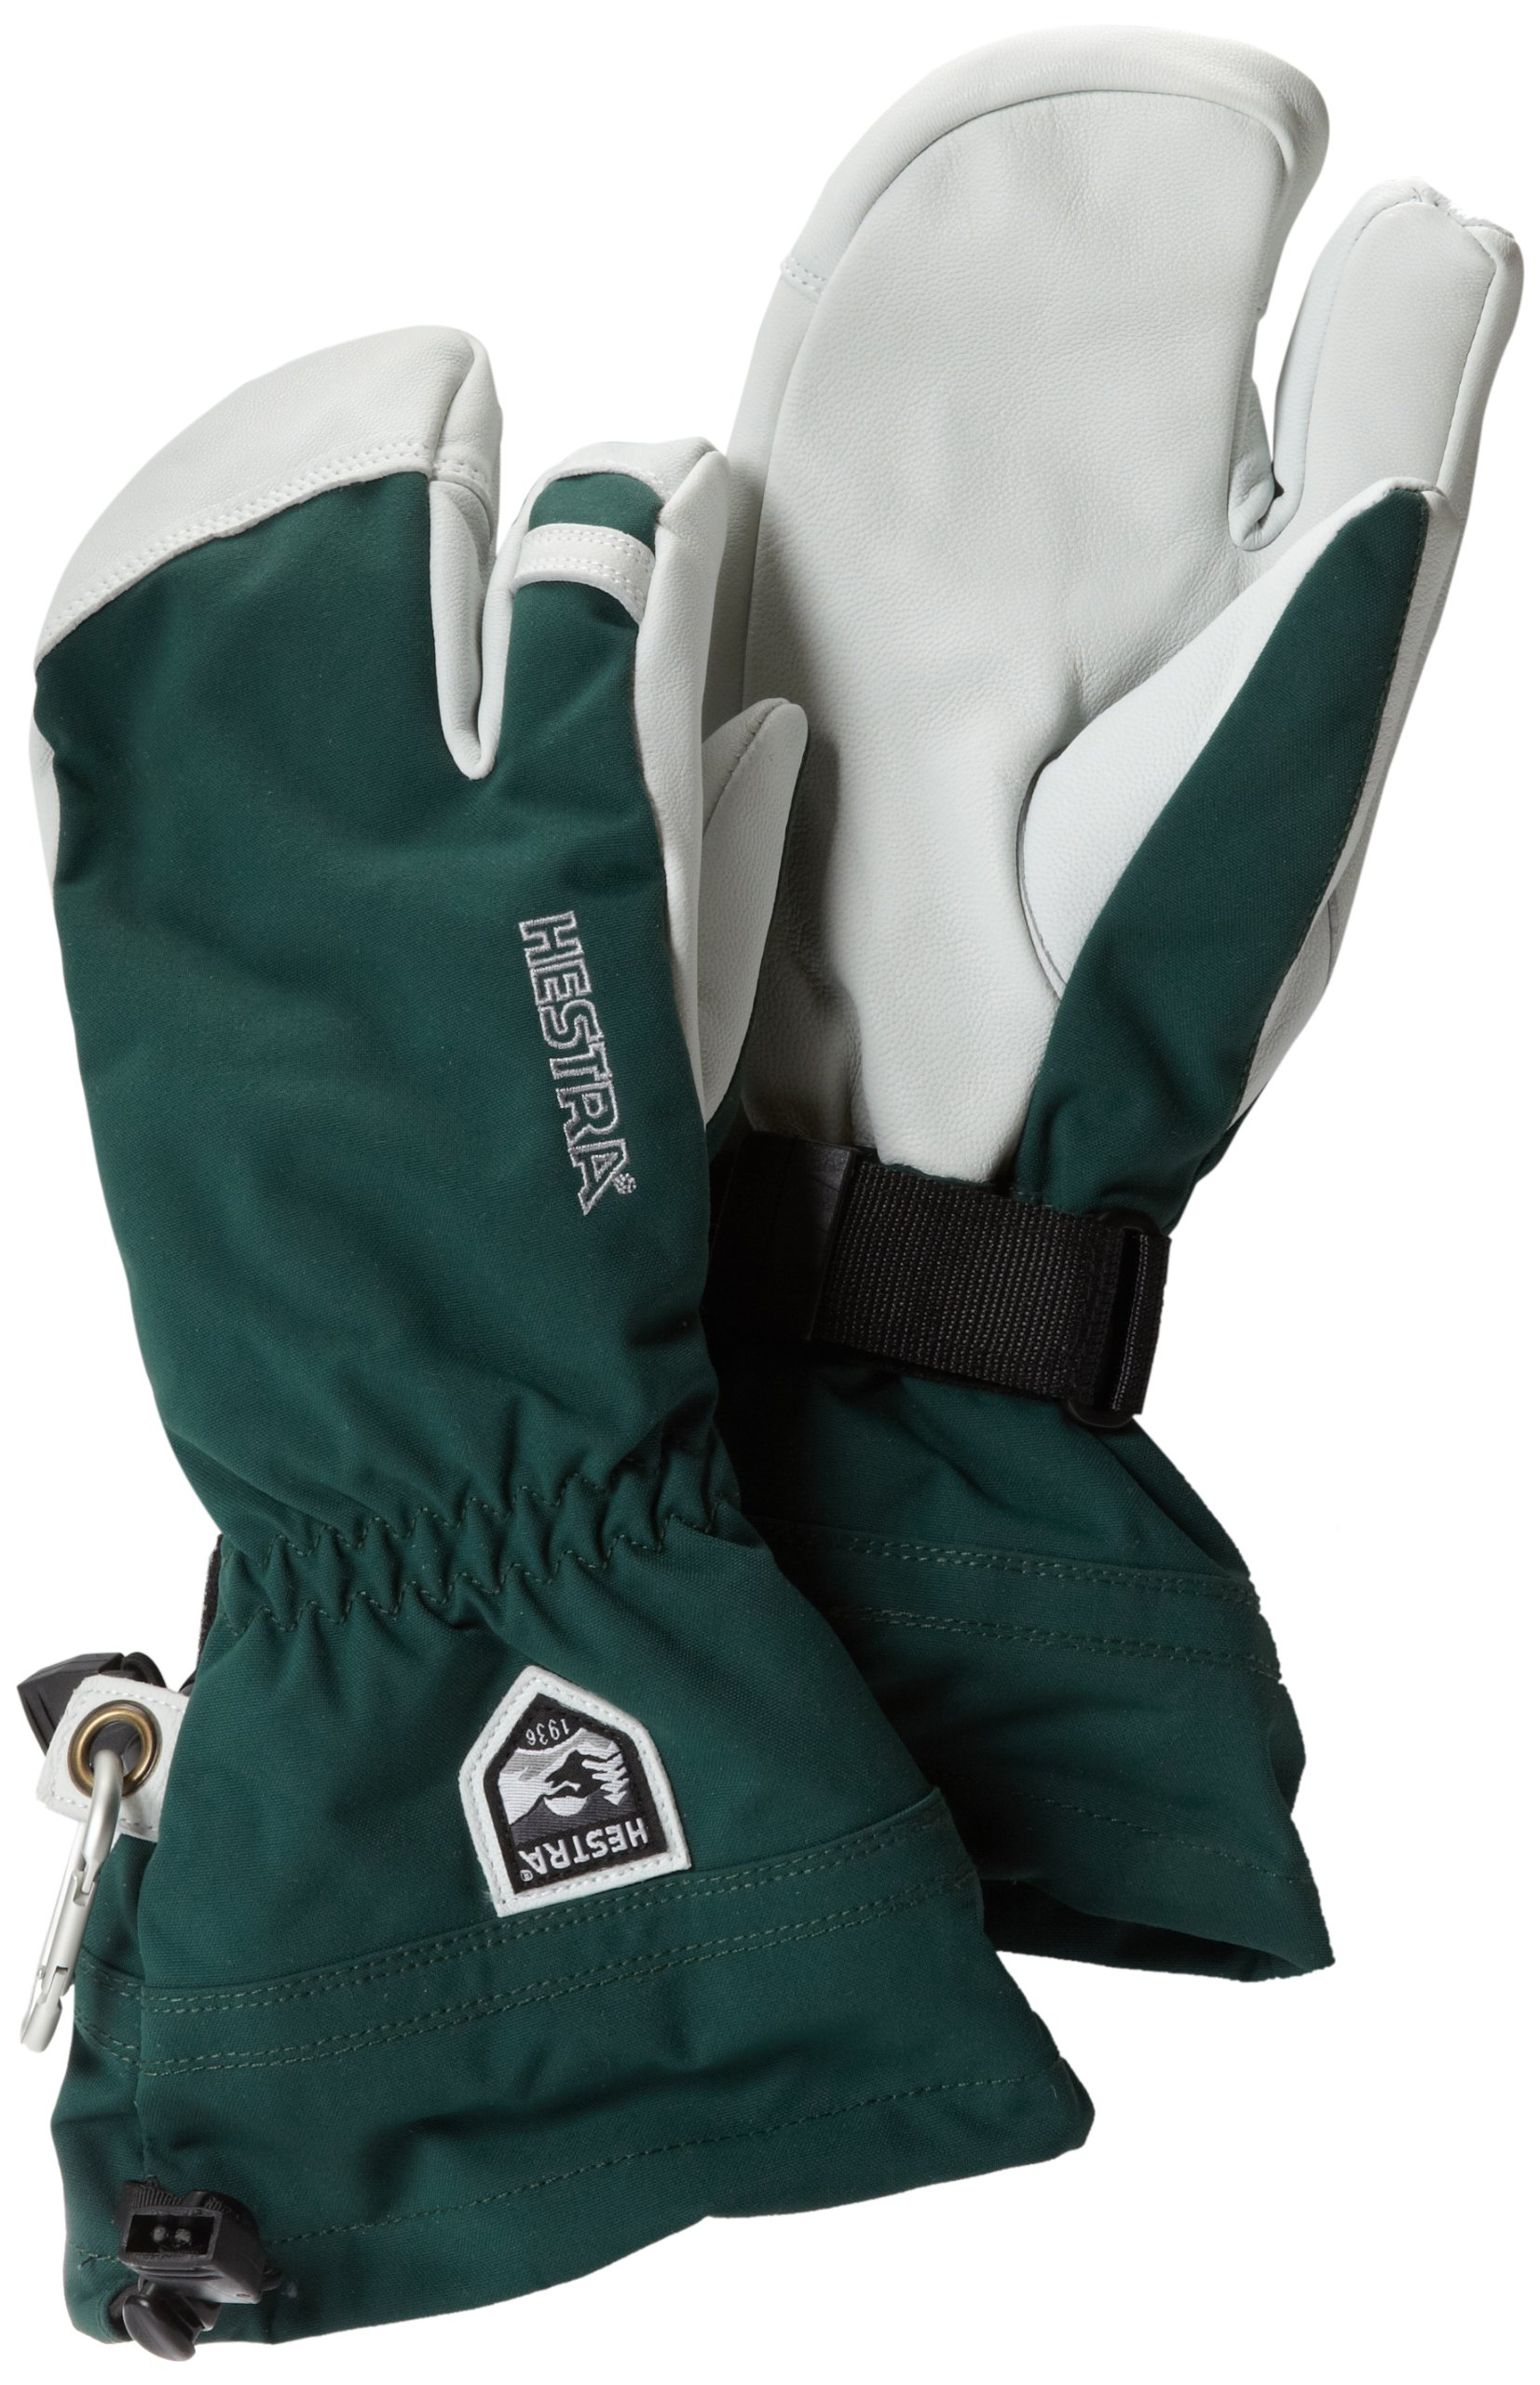 Hestra Army Leather Heli Ski 3-Finger Gloves with Gauntlet,Bottle Green,10